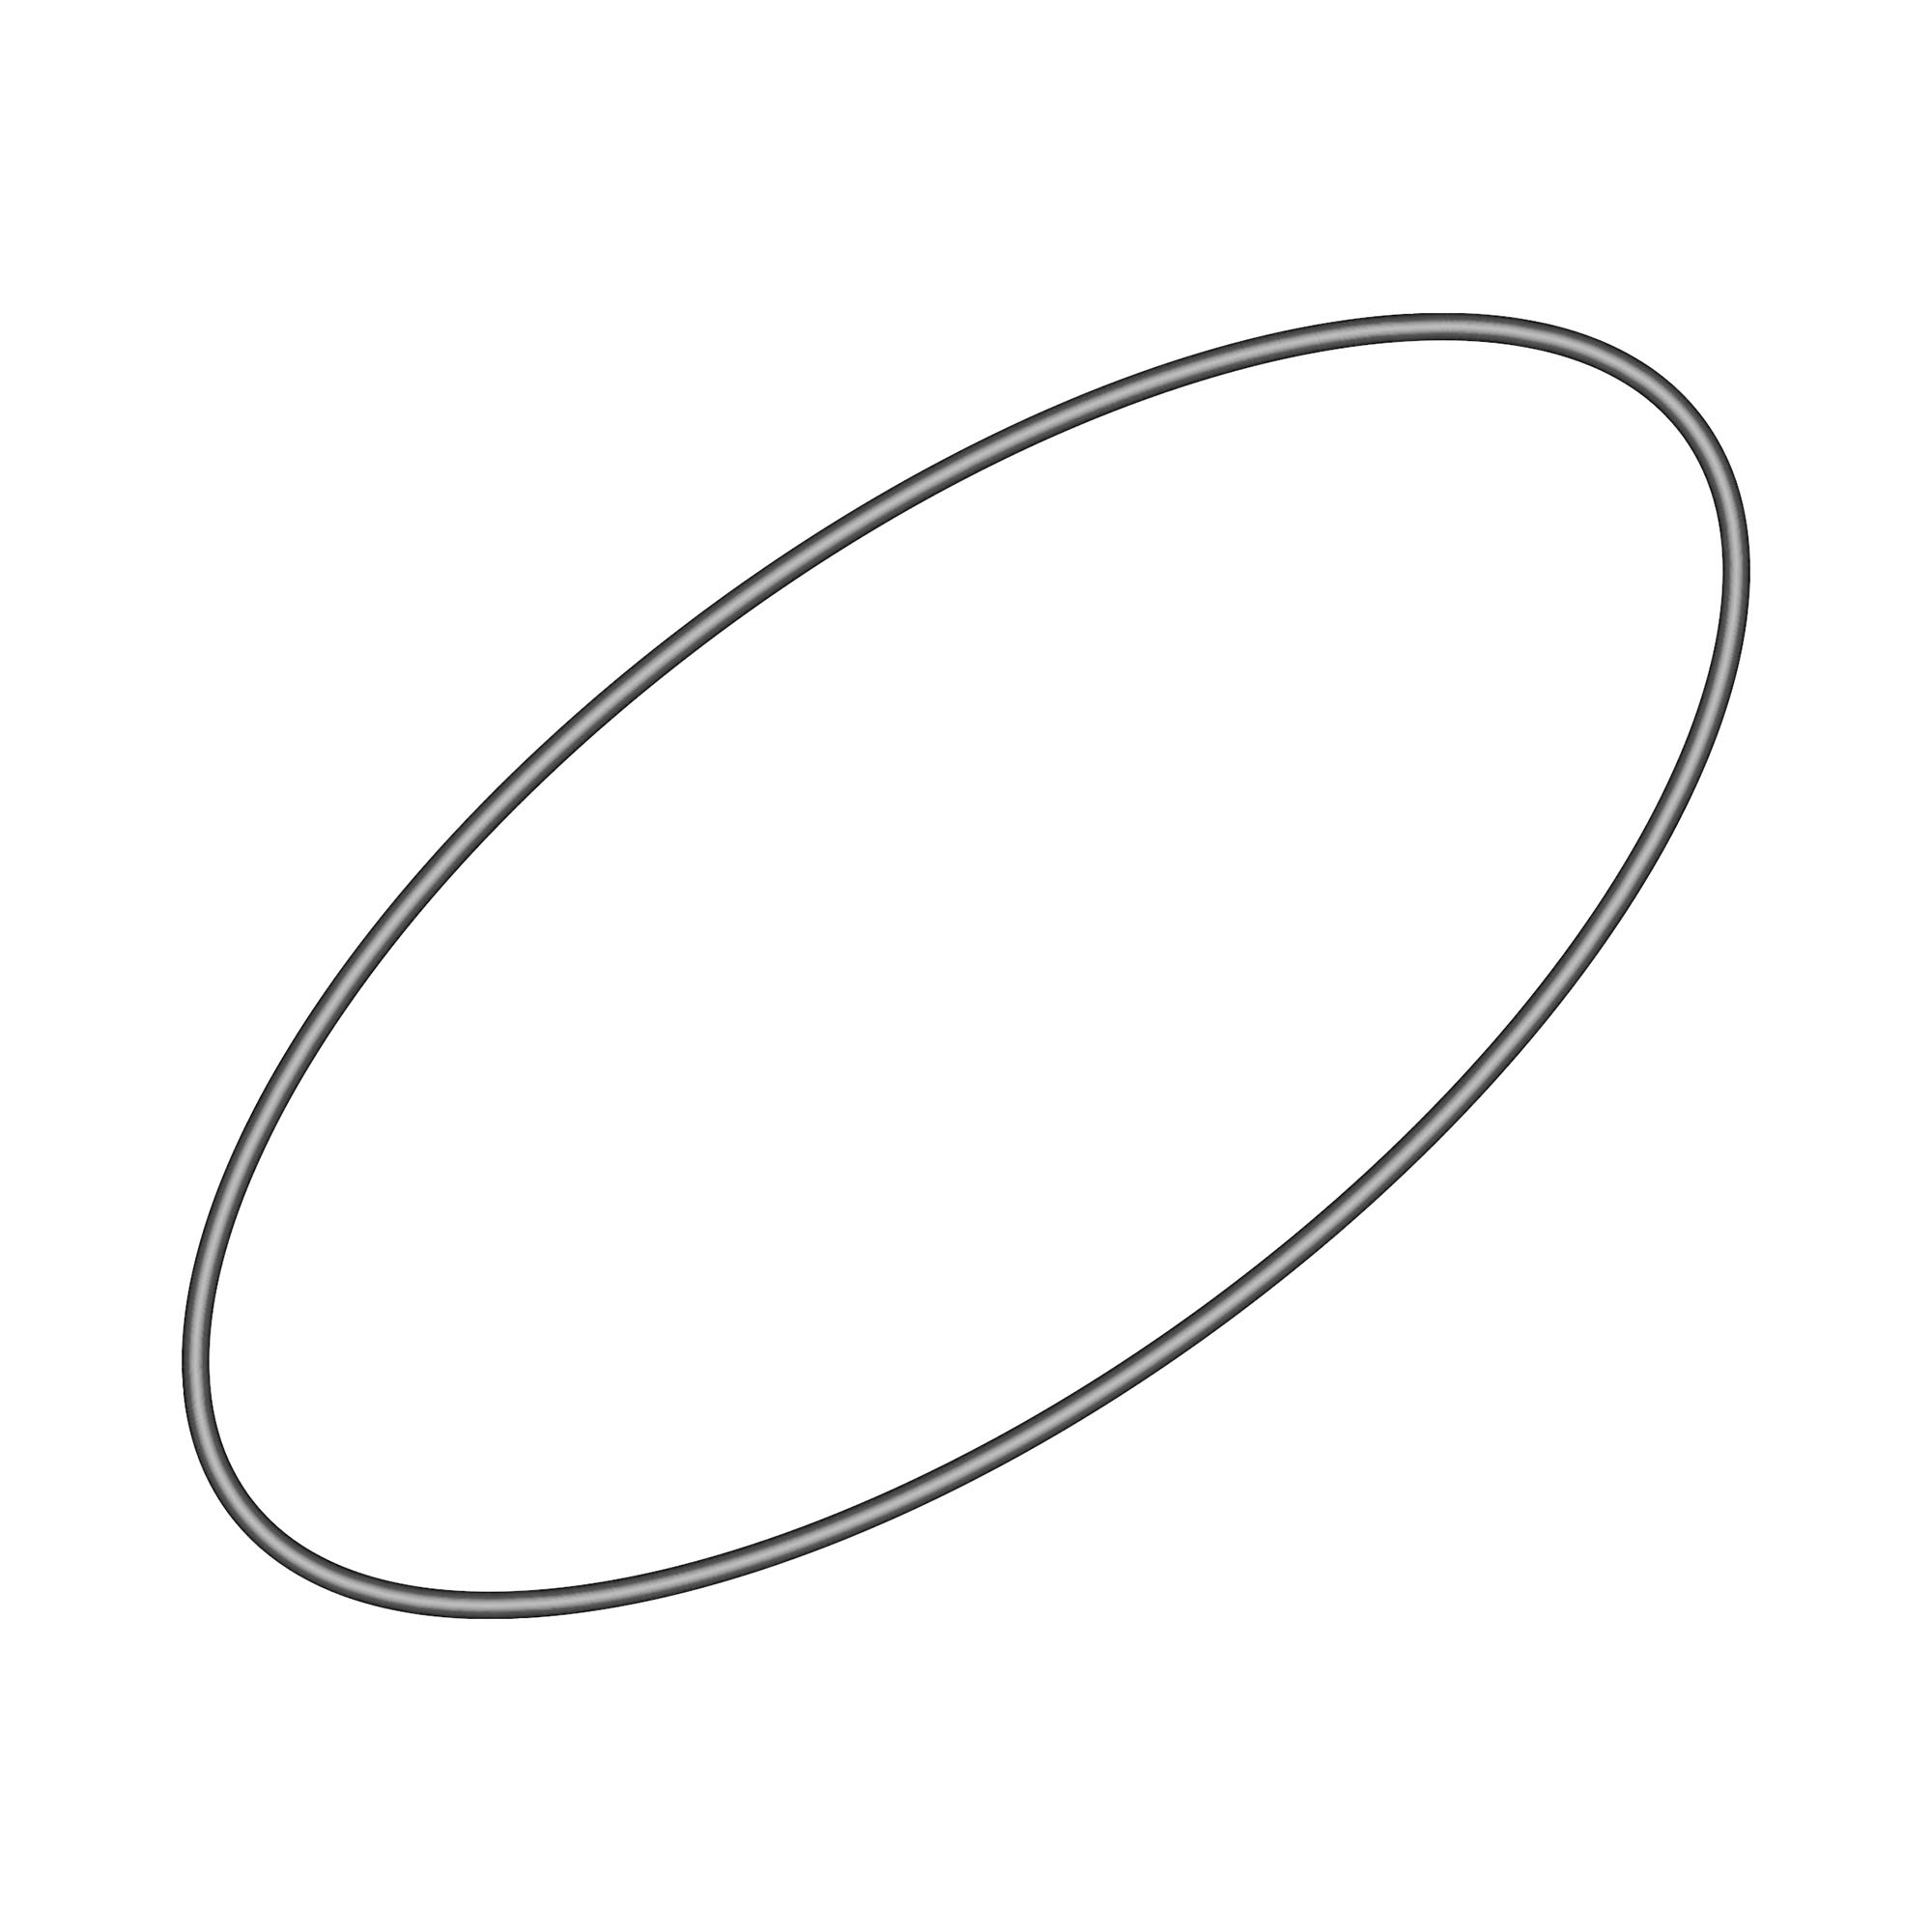 Model 902031 Replacement Drum Lid Gasket for EasySwitch Wet-Dry Vac